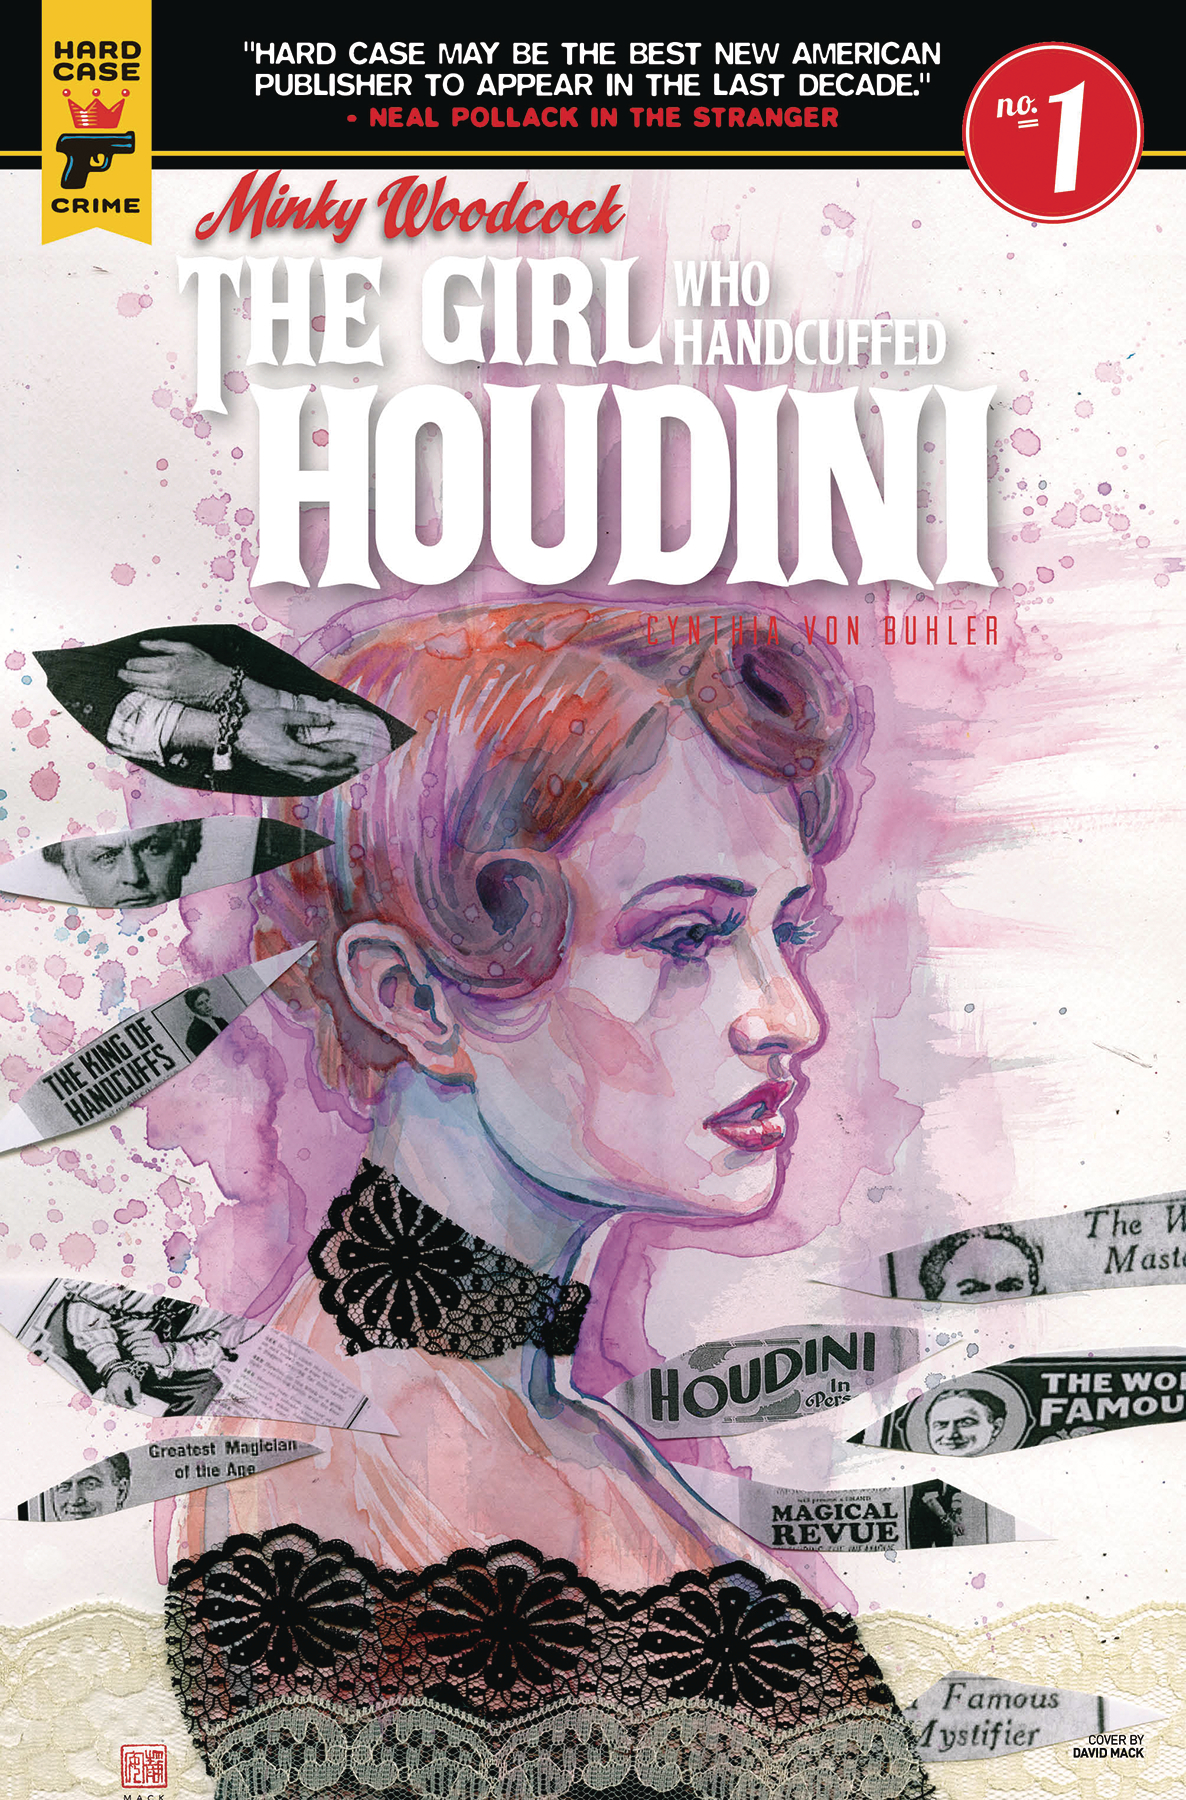 MINKY WOODCOCK GIRL WHO HANDCUFFED HOUDINI #1 CVR A MACK